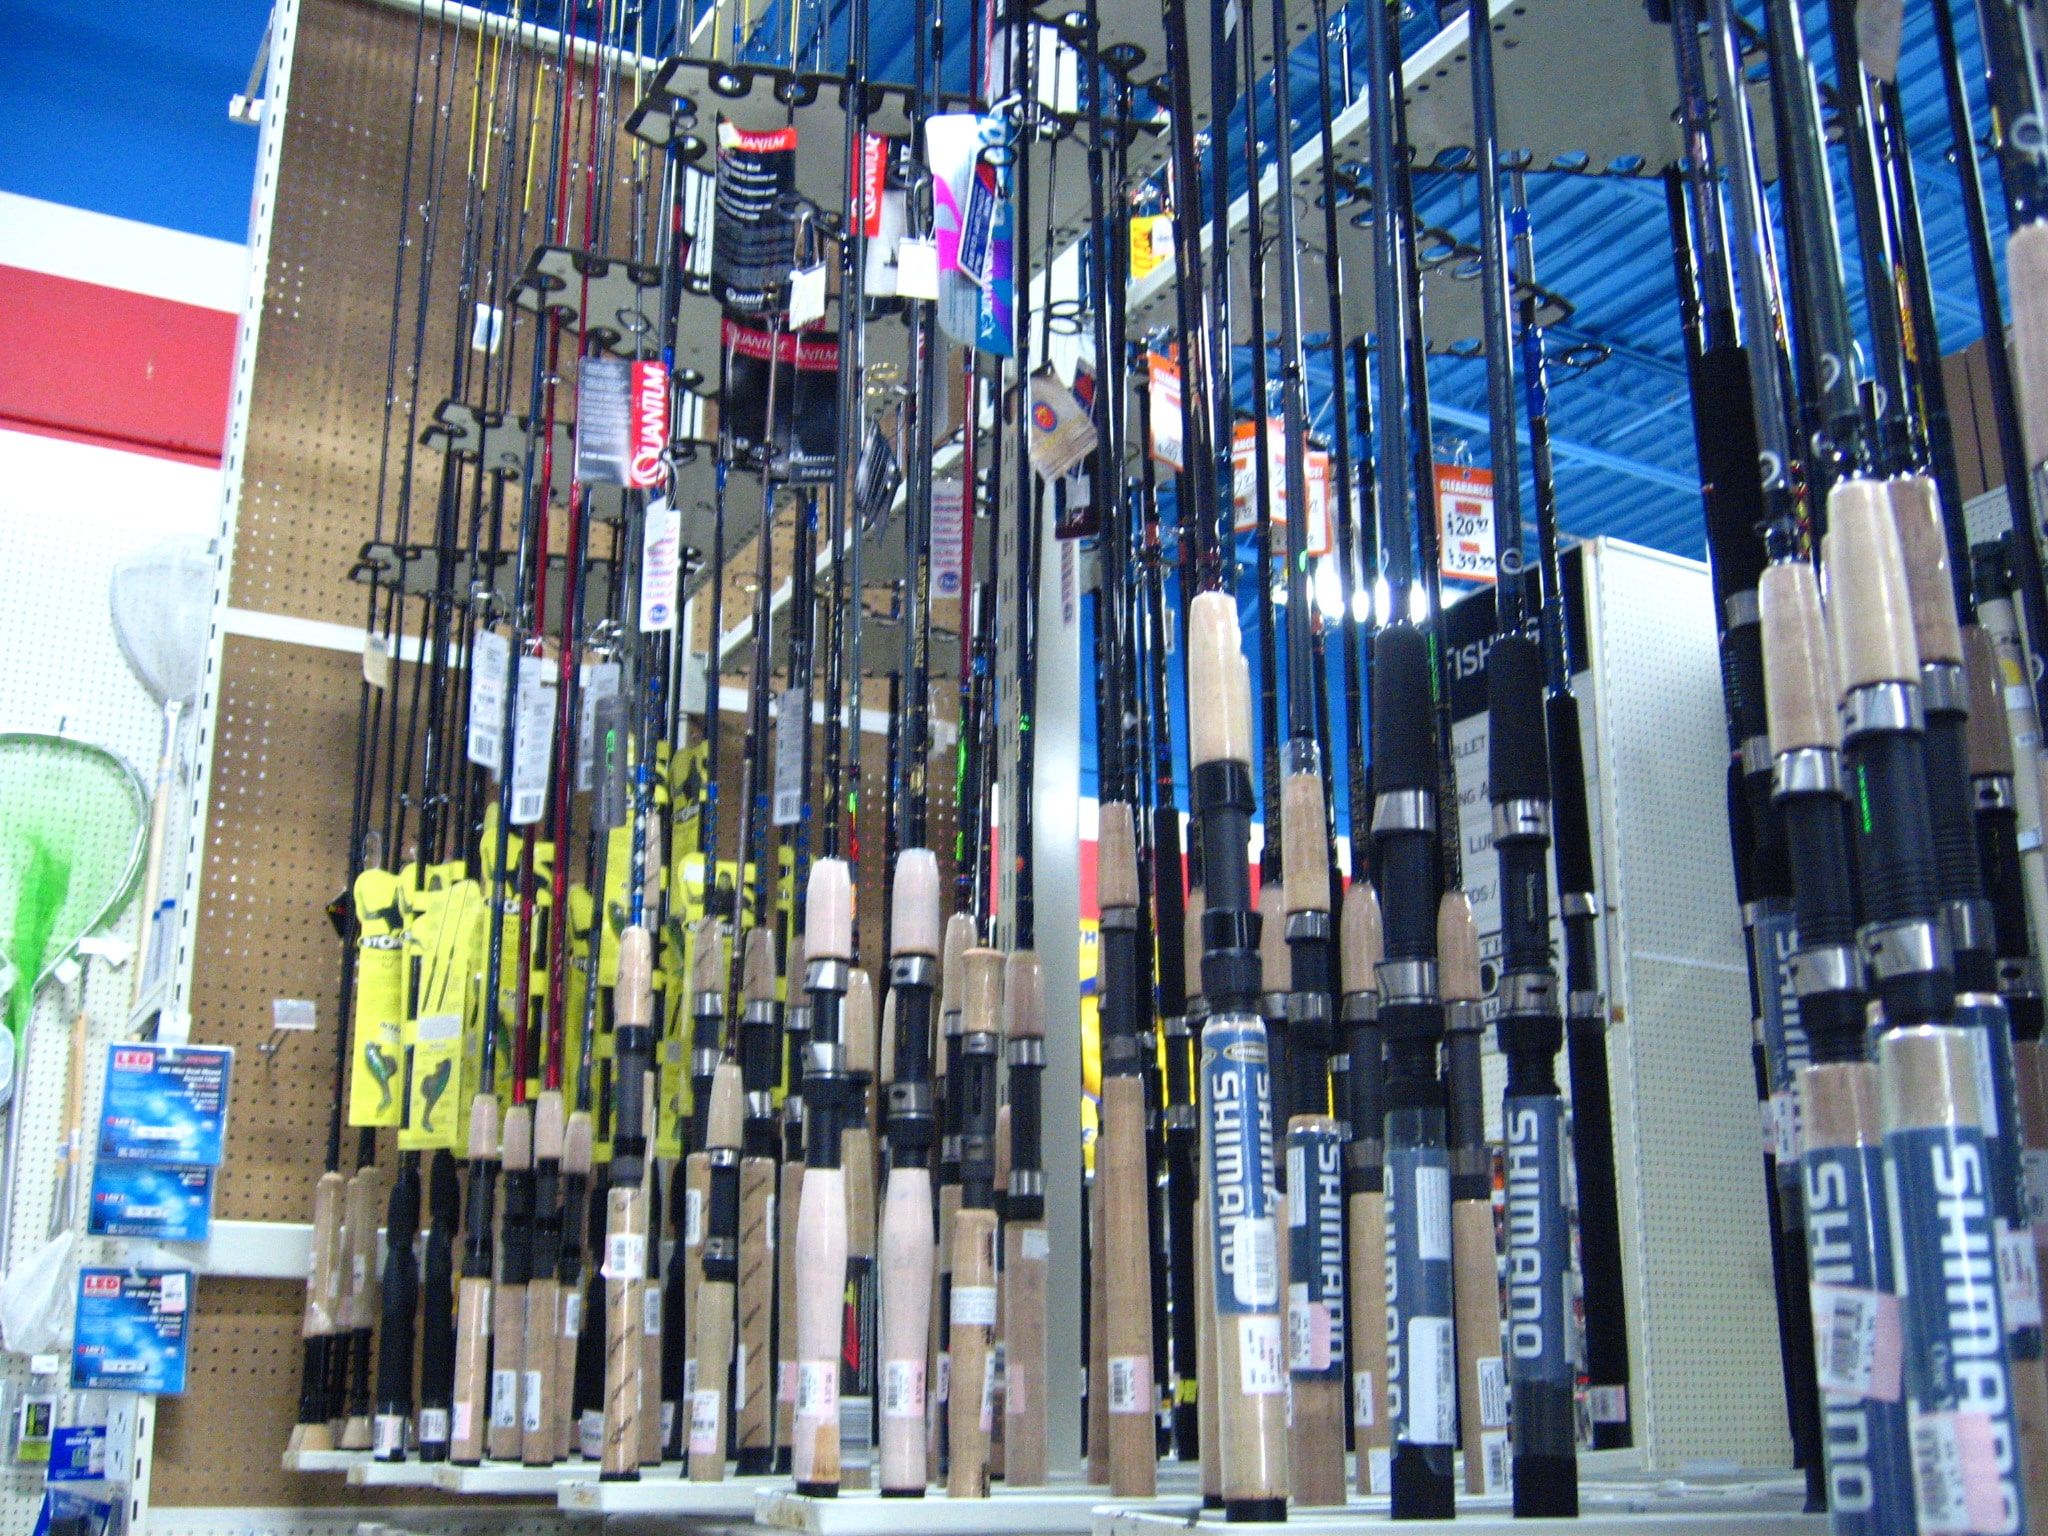 crappie fishing rods